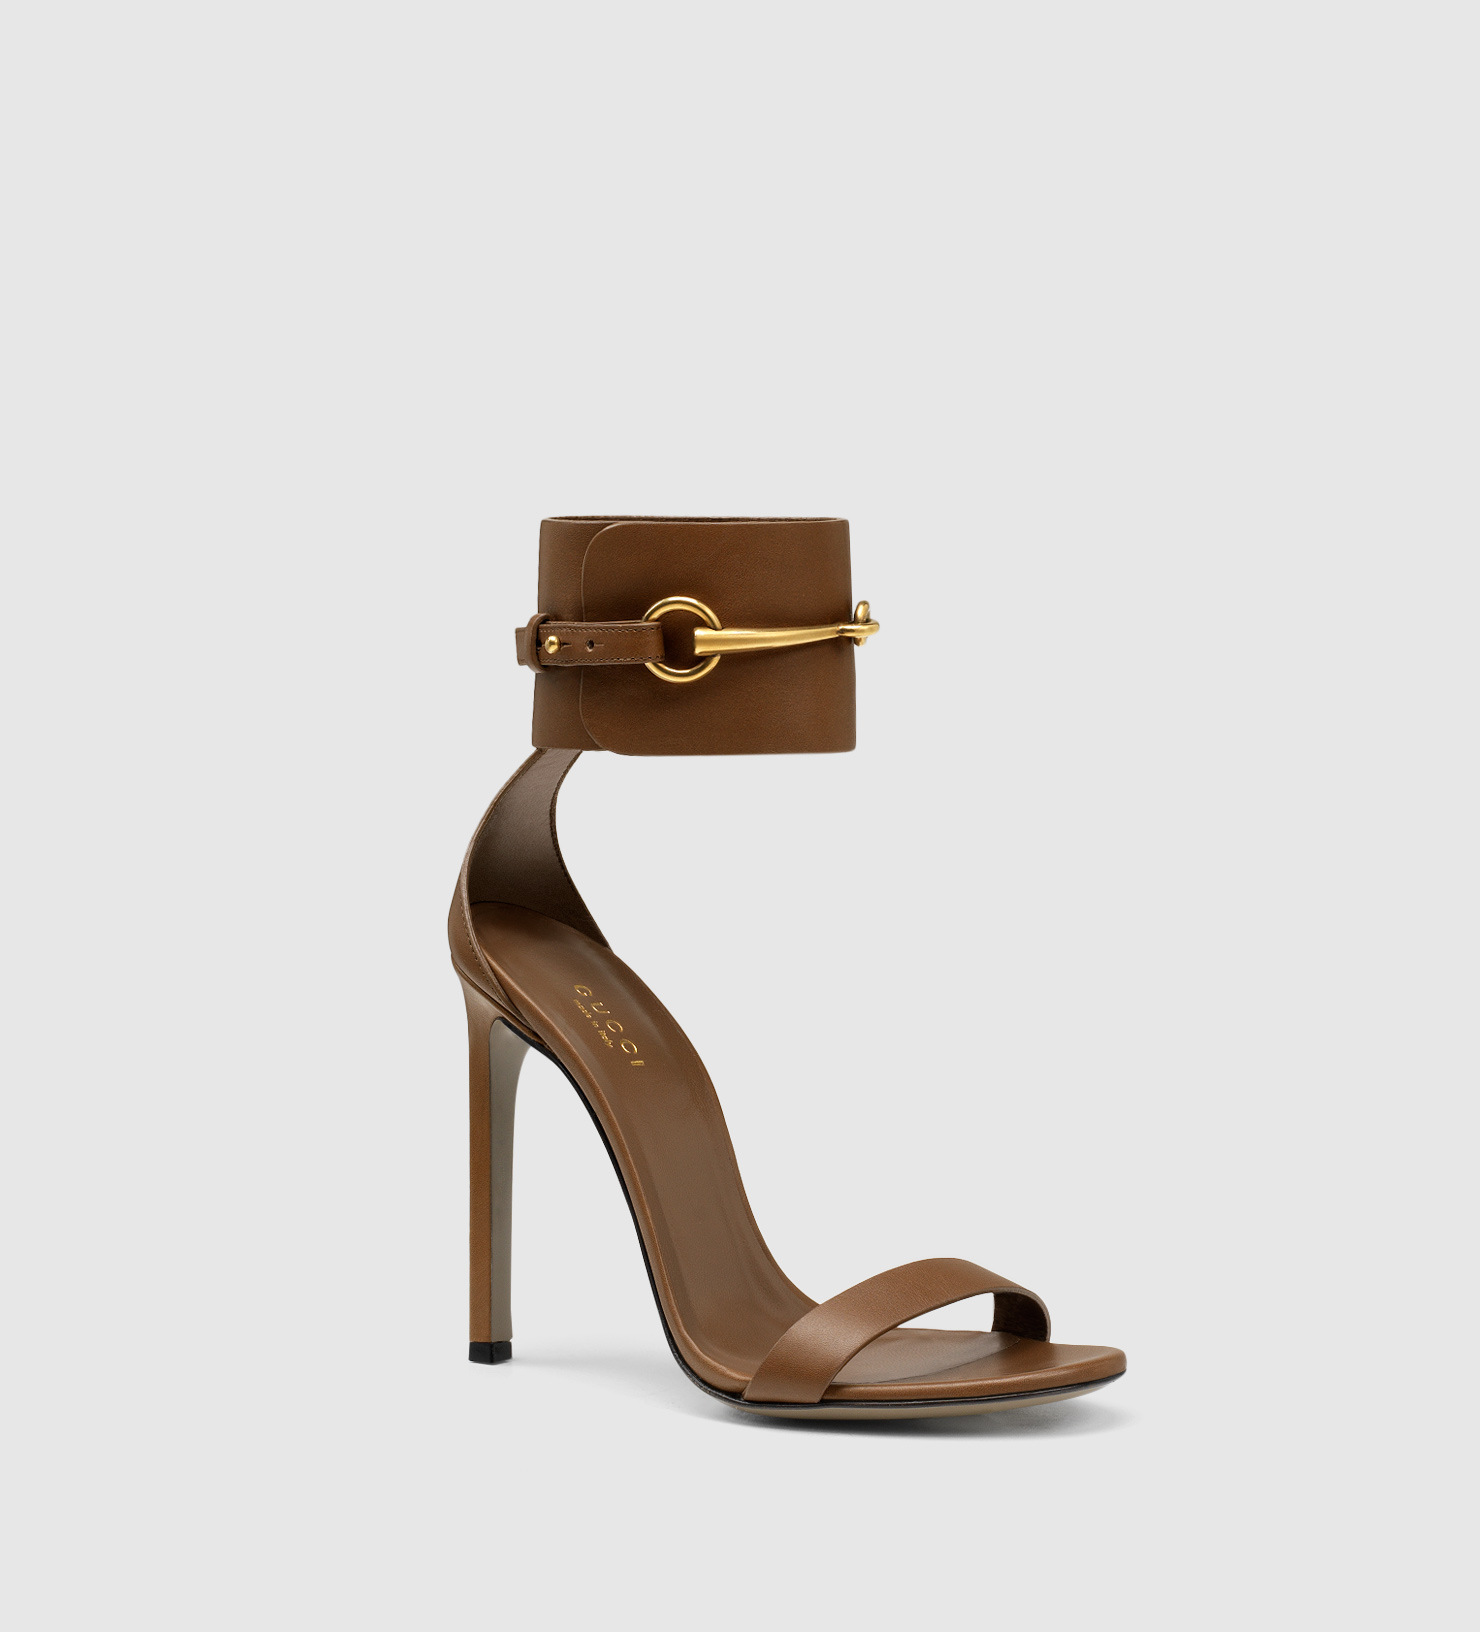 d4f6d4d2540b Lyst - Gucci Ankle-strap Leather Sandal in Brown